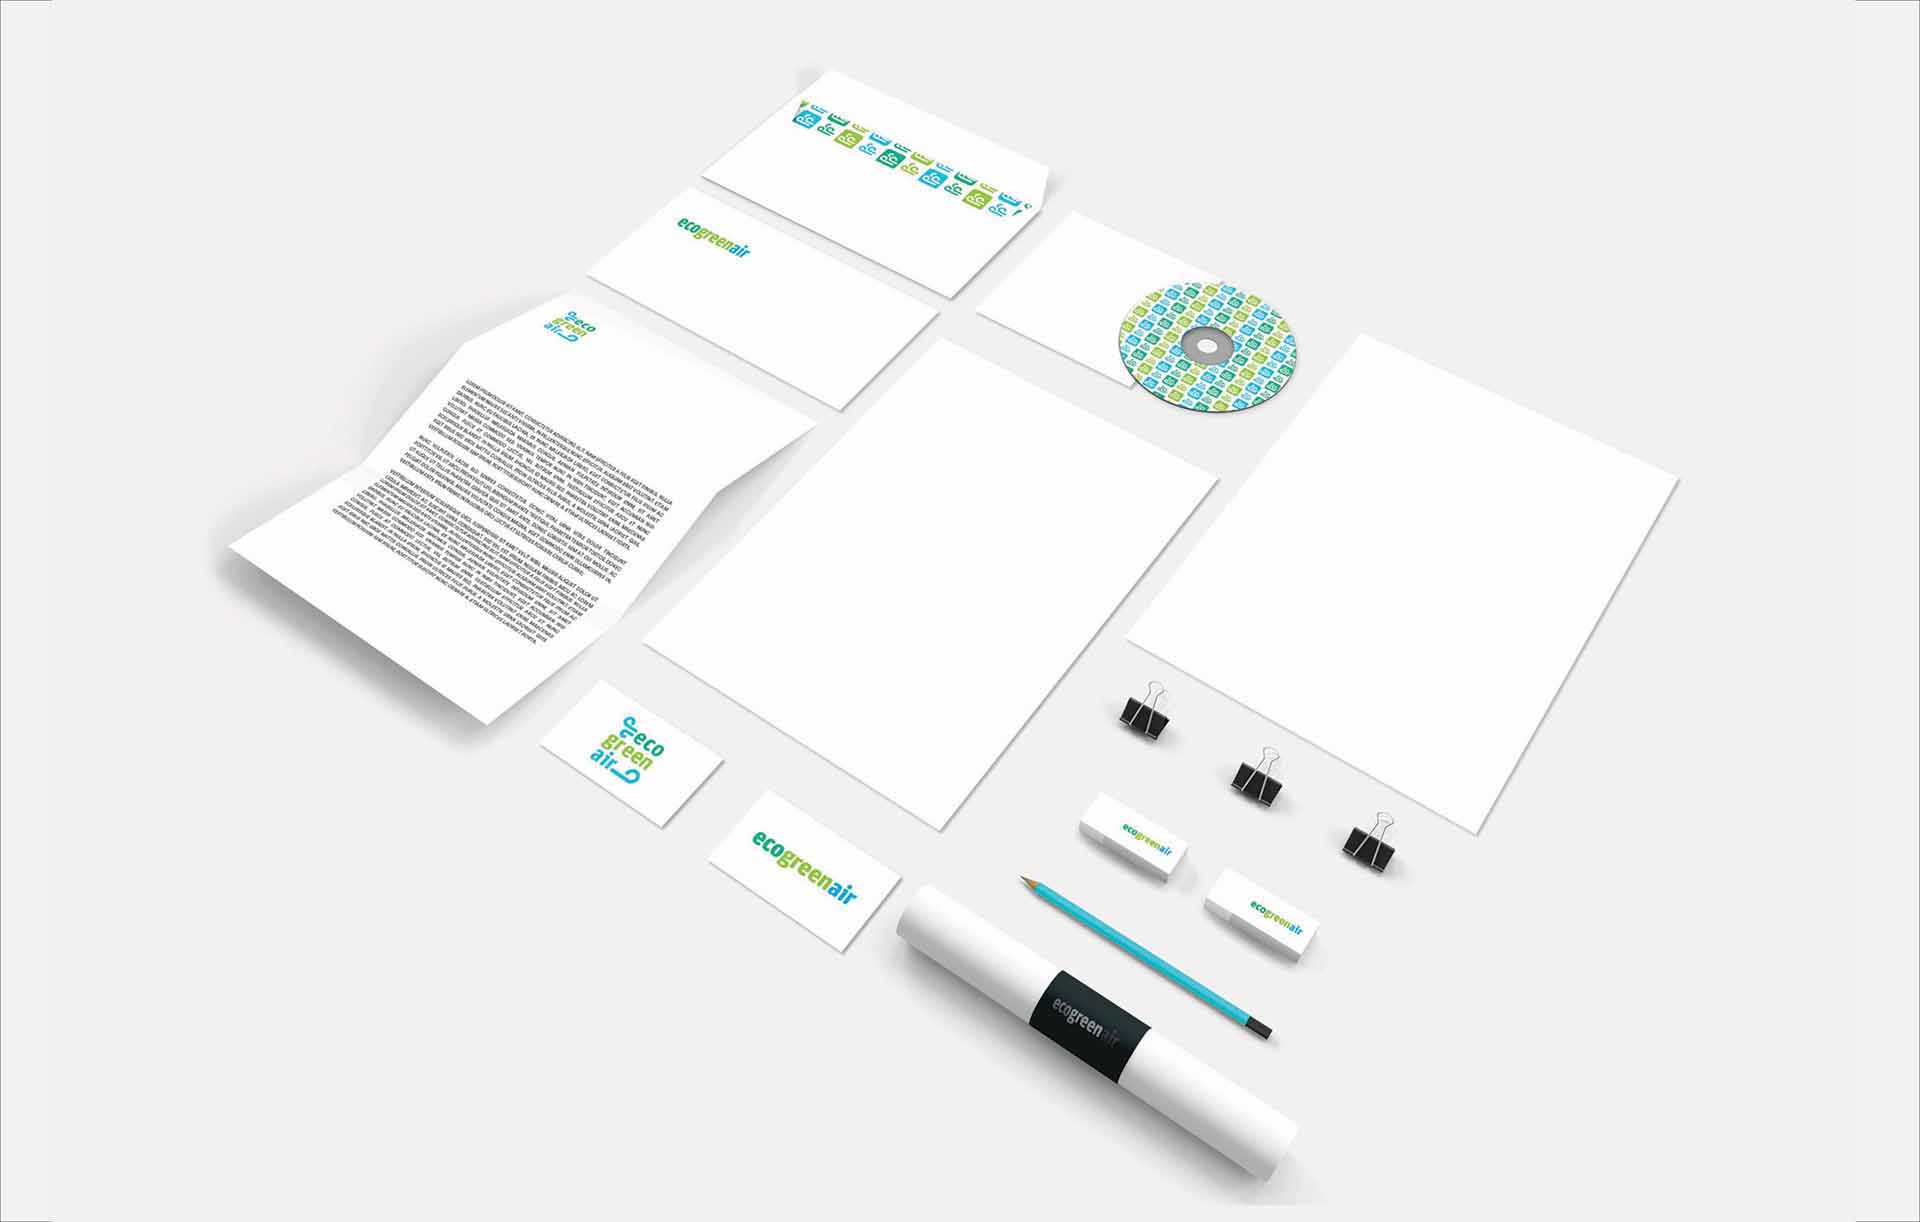 Ecogreen stationary